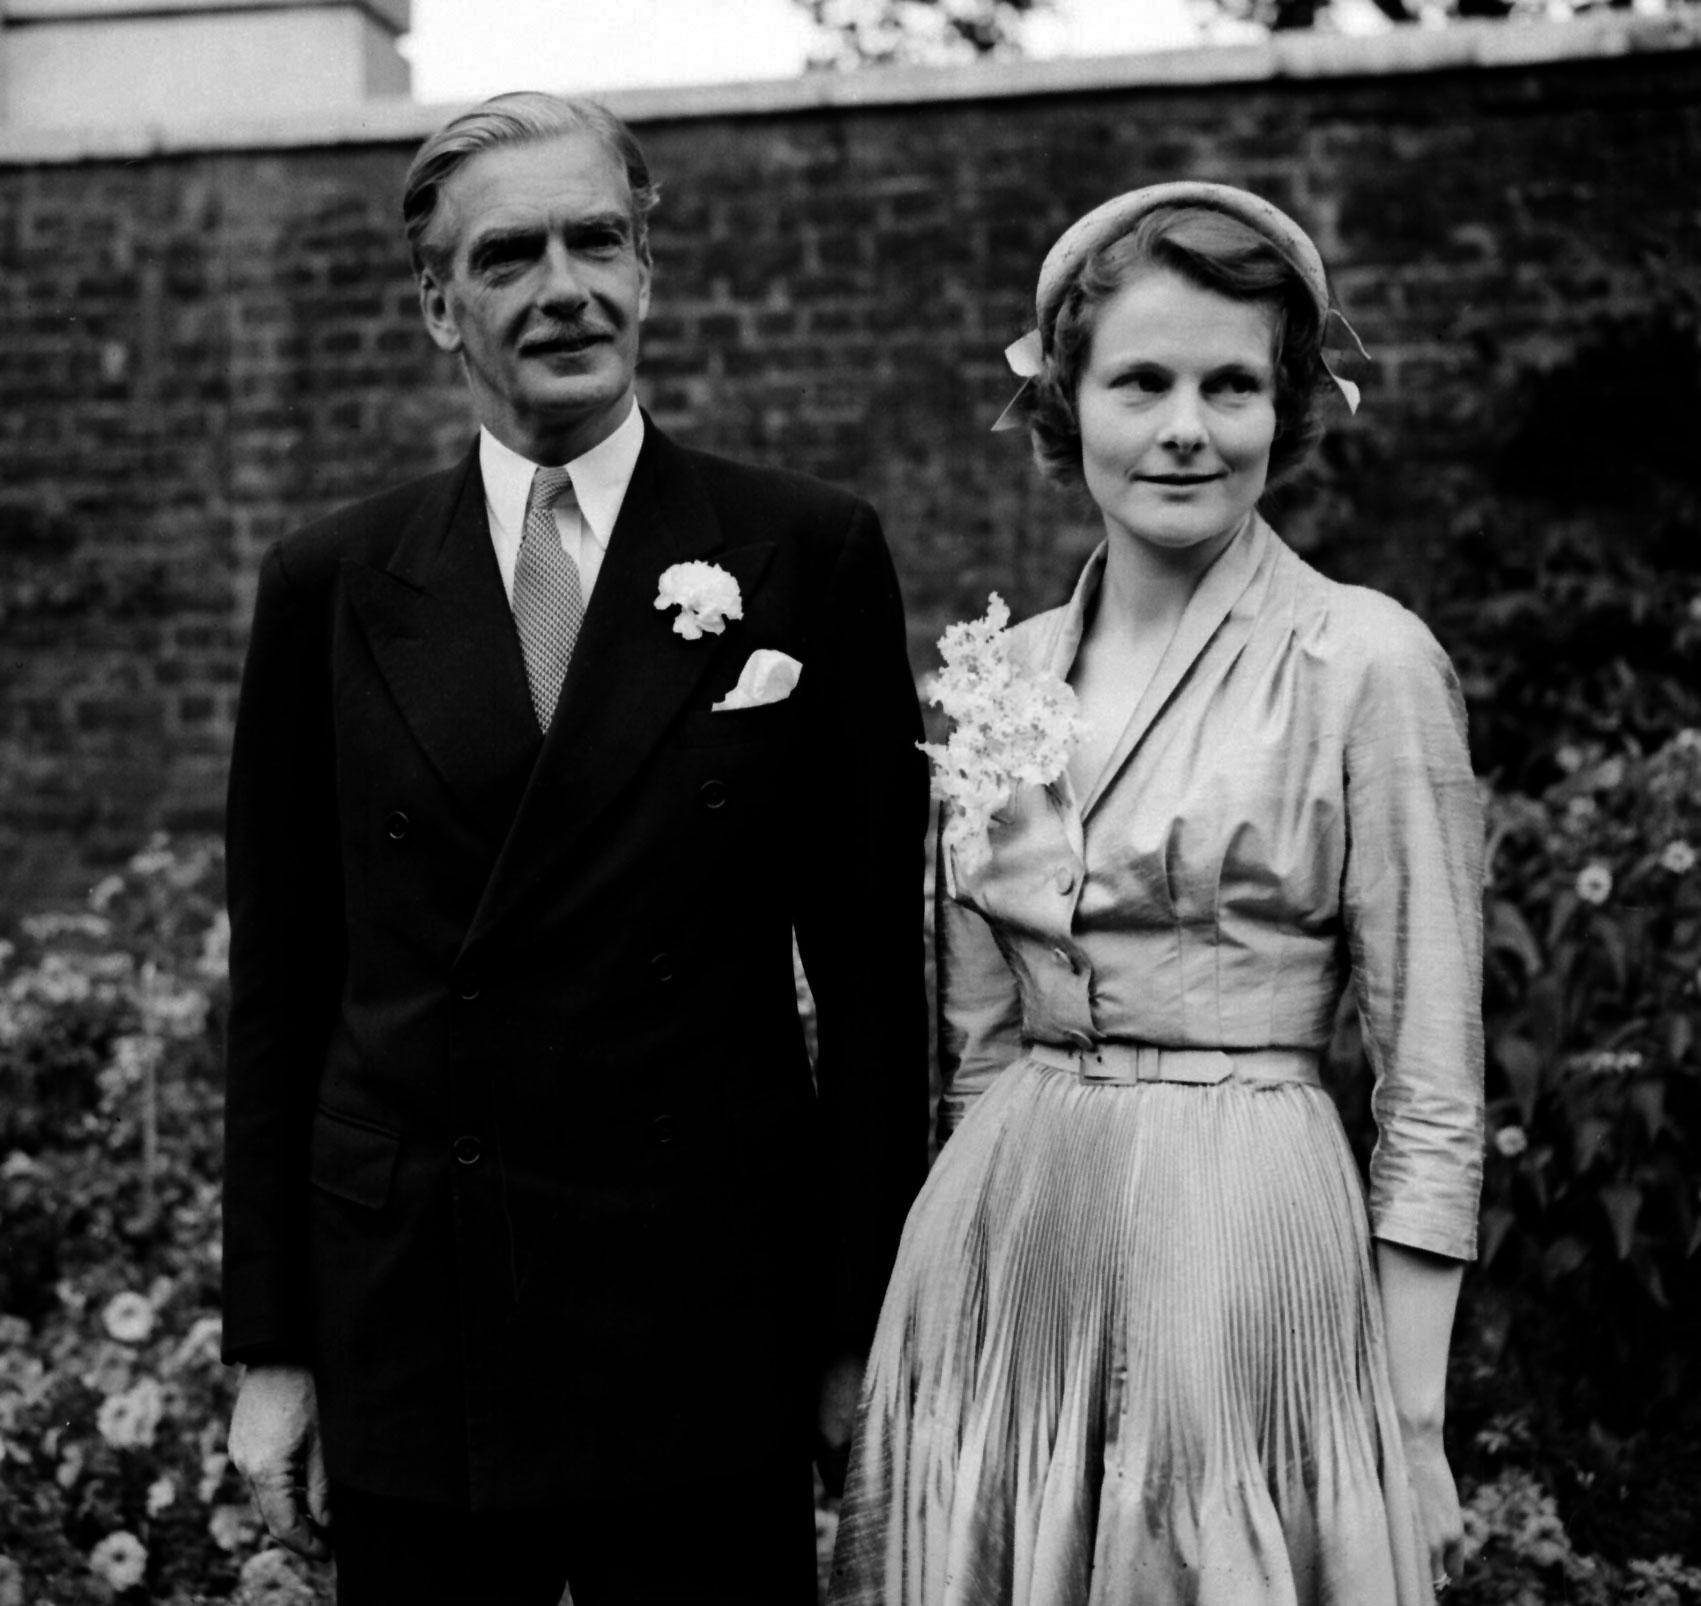 Mr and Mrs Anthony Eden in the garden of No 10 Downing Street after their wedding at Caxton Hall Register Office, Westminster. The Groom is Britain's Foreign Secretary while the Bride, the former Clarissa Spencer Churchill, is the 32 year old niece of Sir Winston Churchill. The marriage survived until Eden's death on 14 January 1977 in Salisbury.